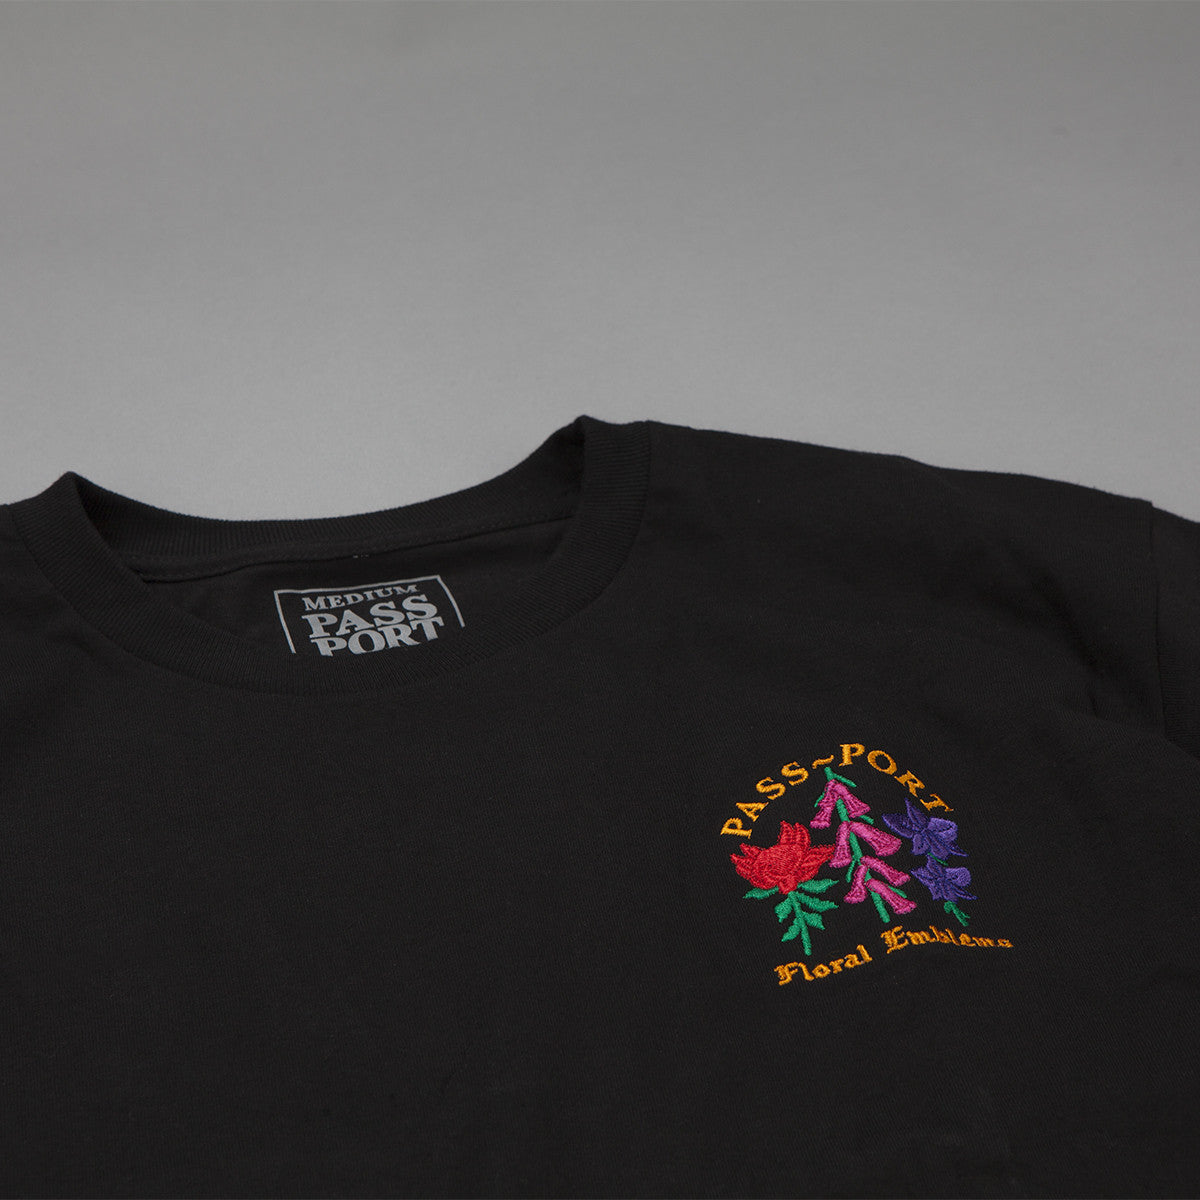 Pass Port Emblem Embroidered T-Shirt - Black